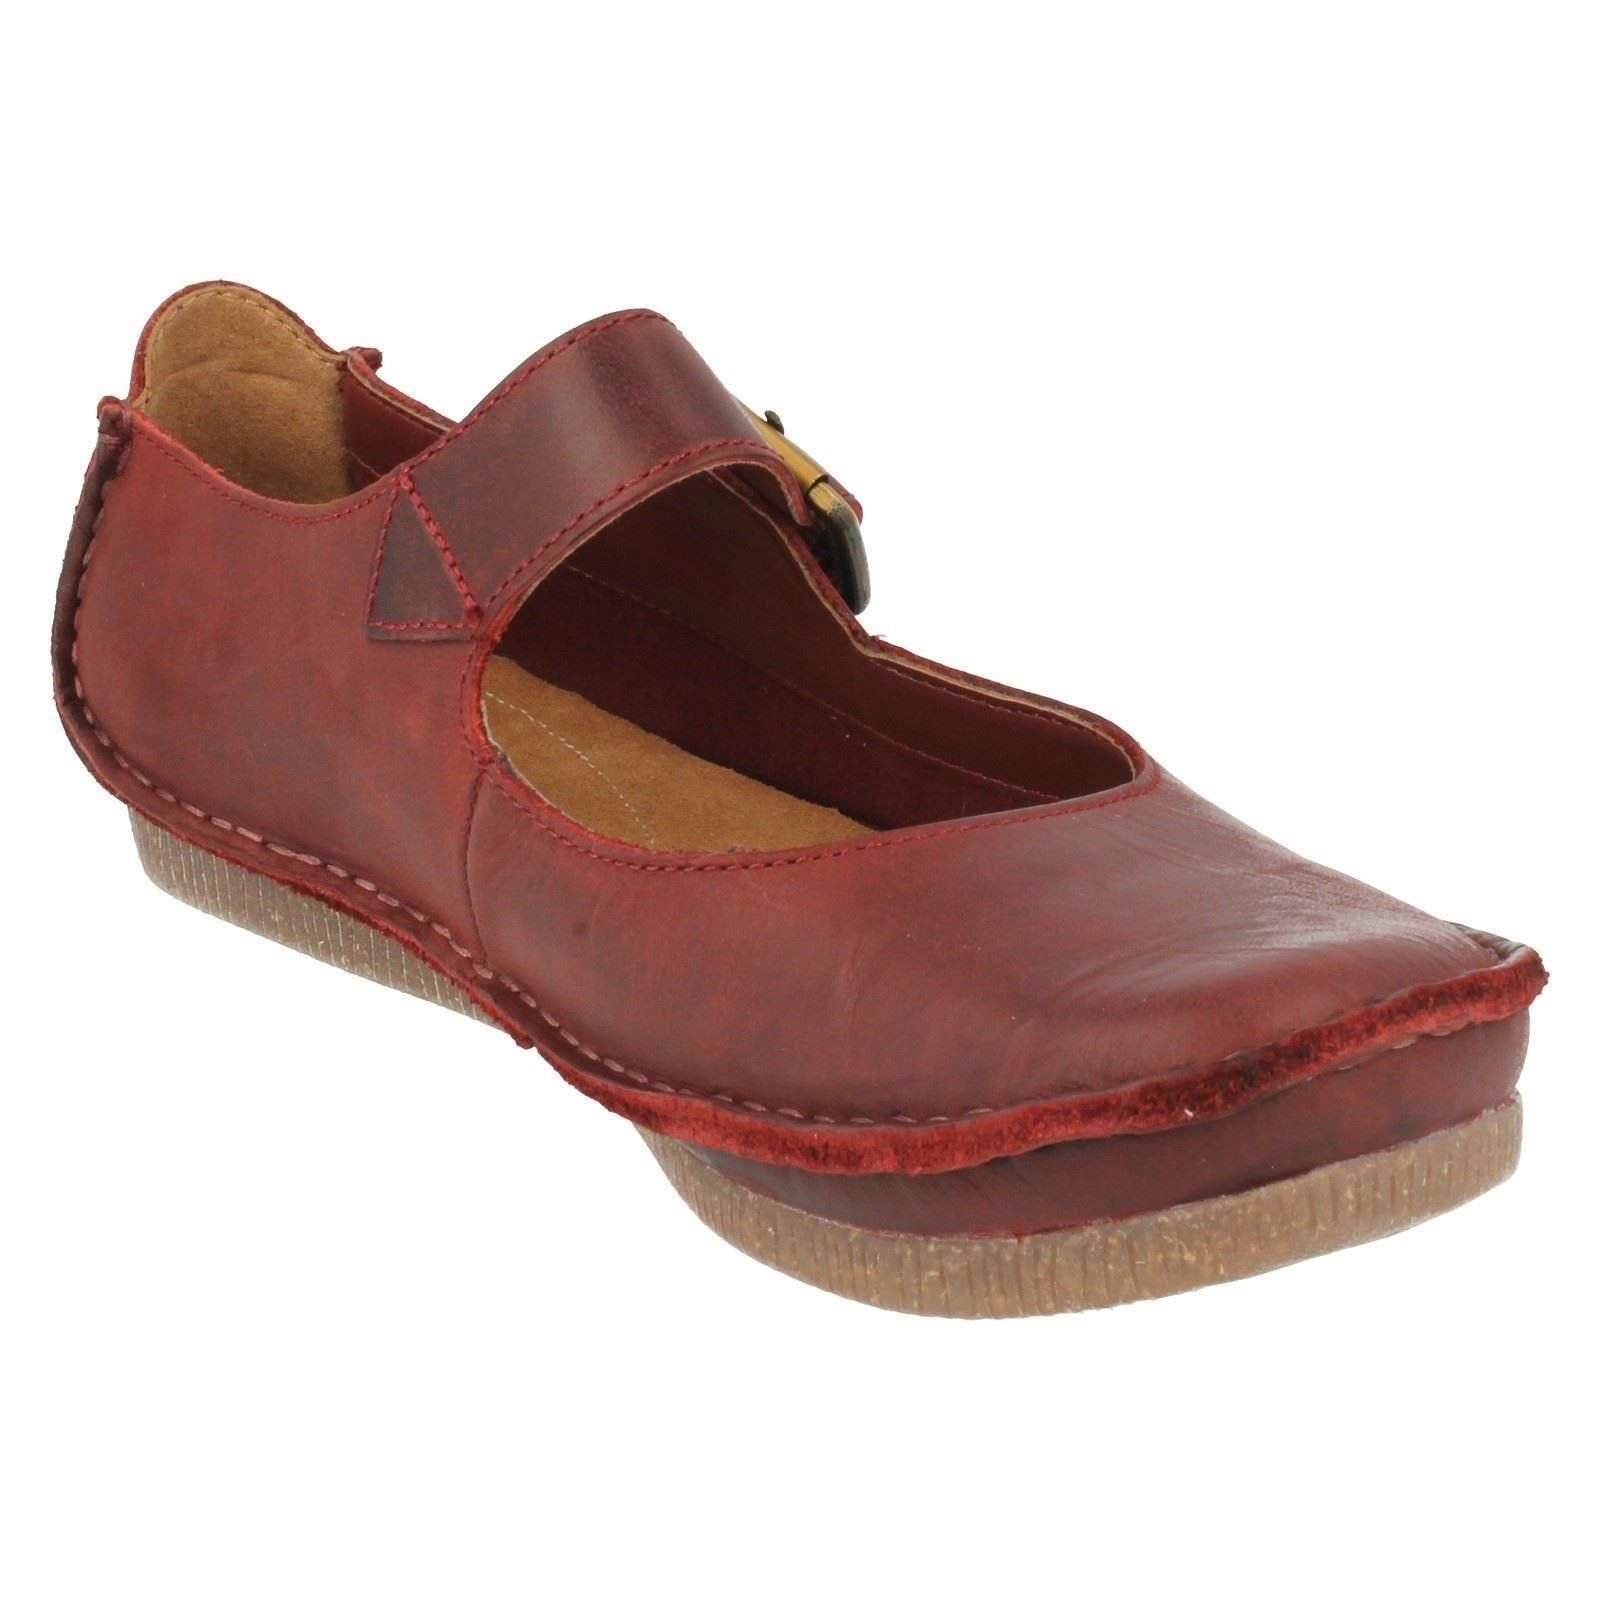 Claerks Women Shoes For Sale   Size